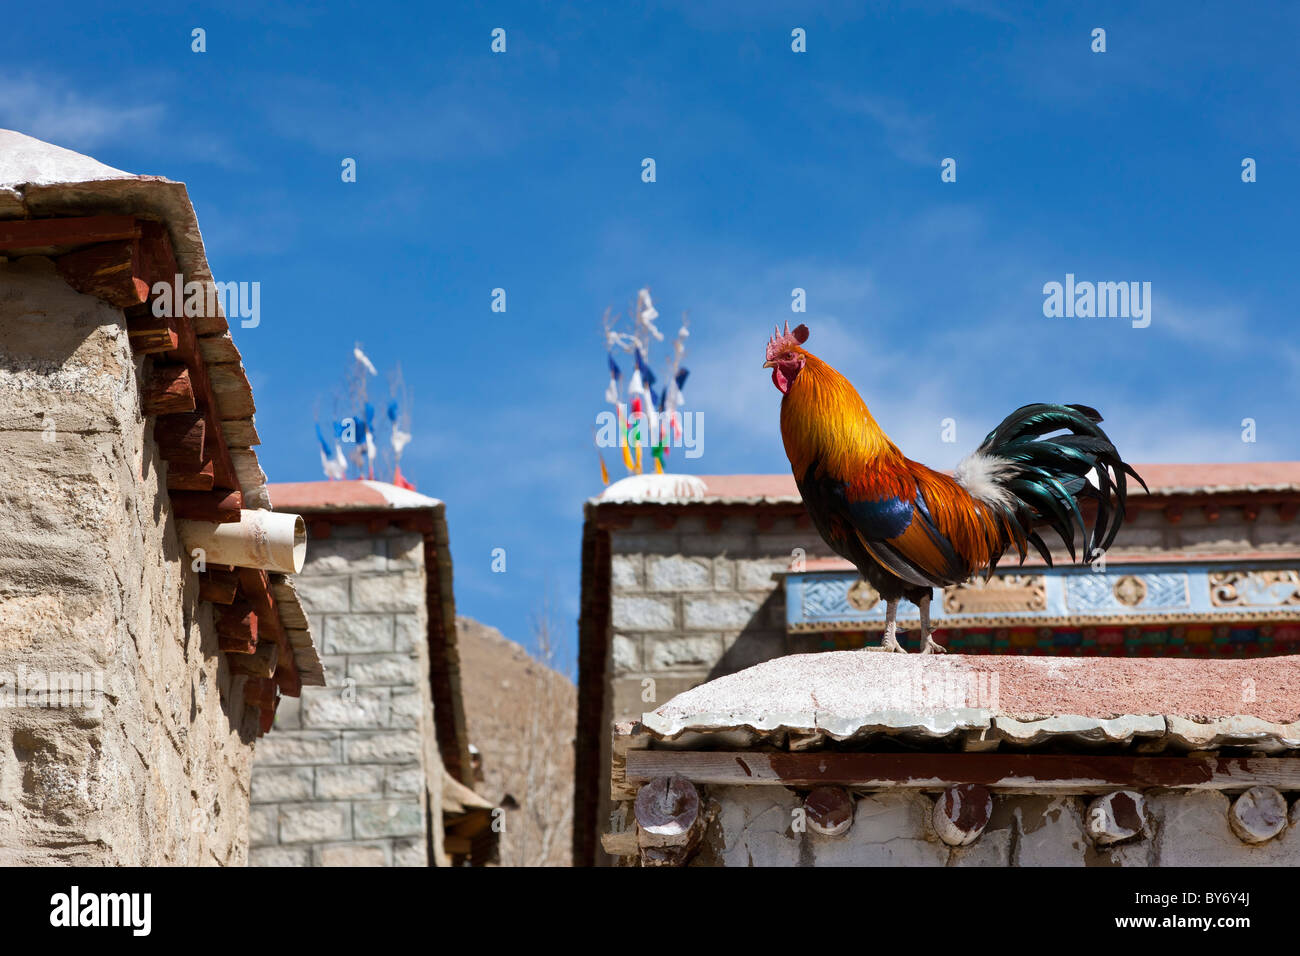 Traditional flags and cockerel on the roof of house in Tibetan village on road from Lhasa Airport to Lhasa Tibet - Stock Image